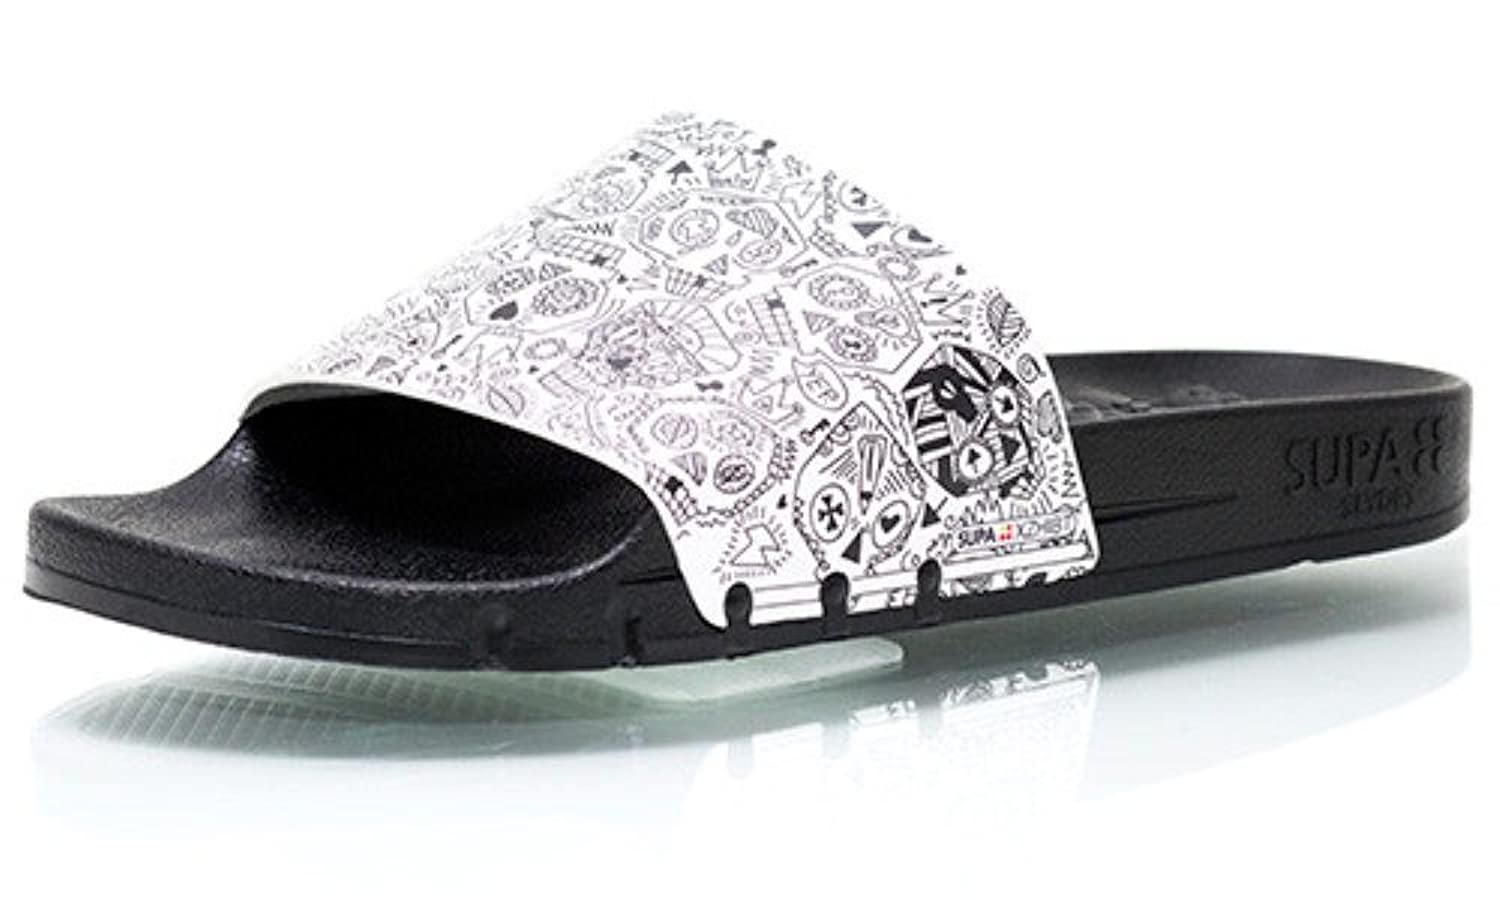 7459473f21 Supa Slydes Skulls Slip On Sport Slide new. Black Flys Flyami Vice Wayfarer  Sunglasses outlet